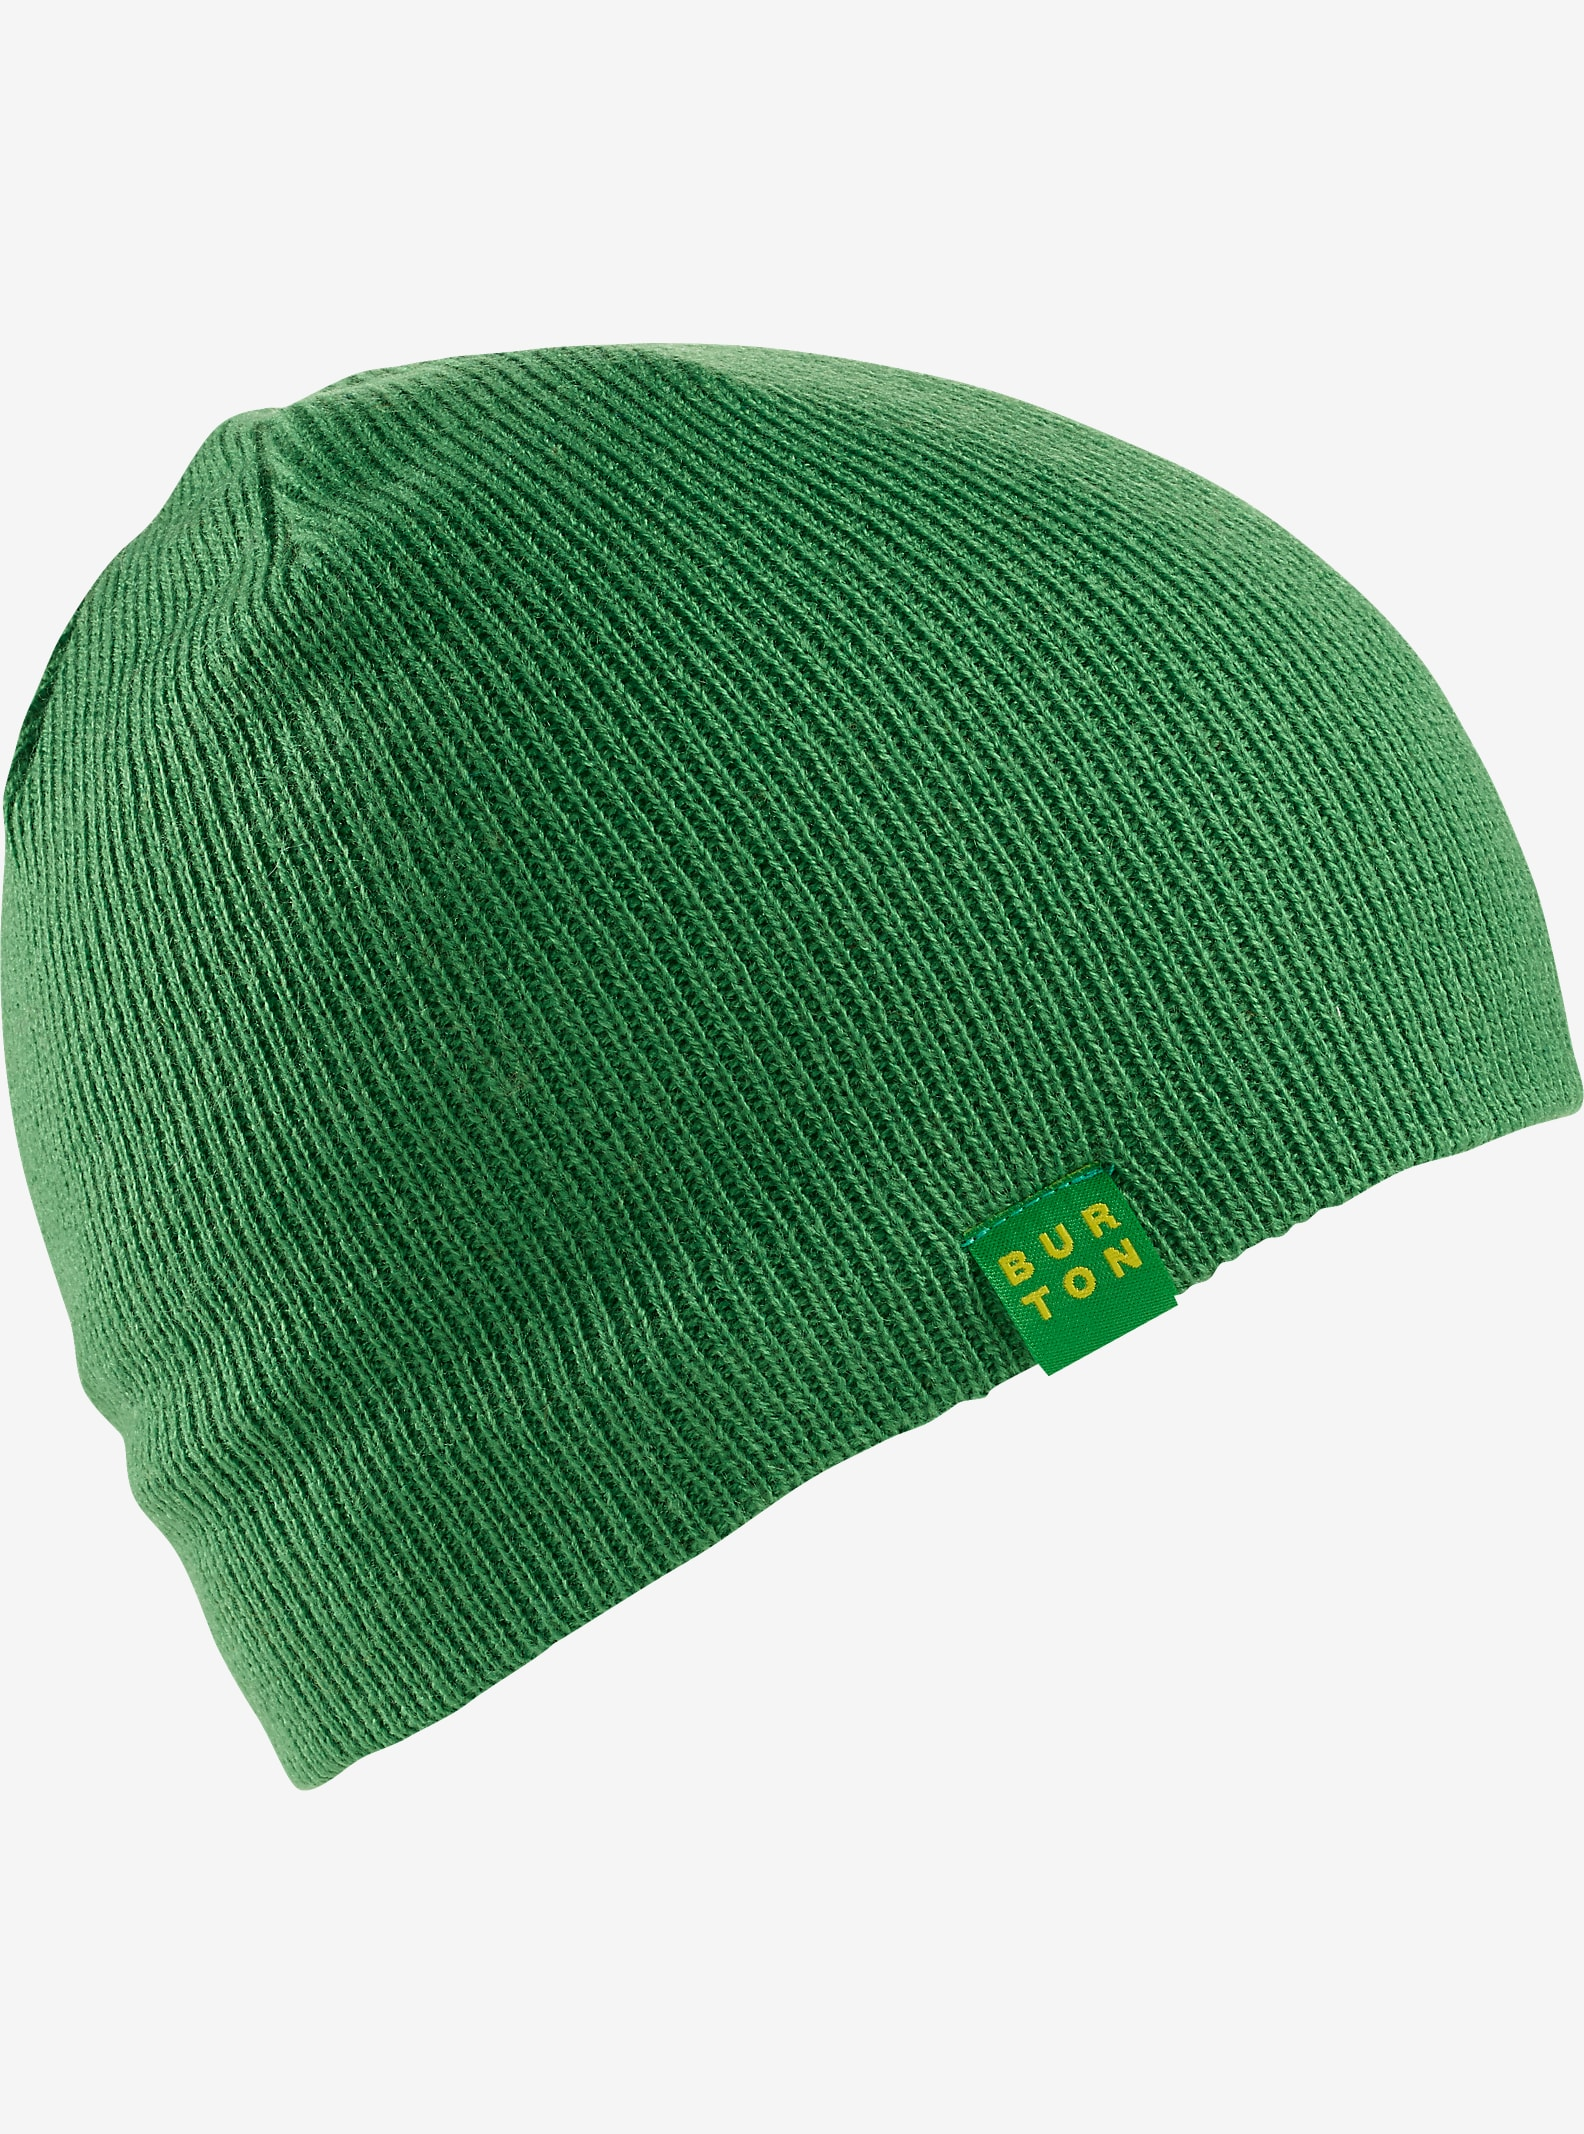 Burton - Tuque All Day Long garçon affichage en Slime